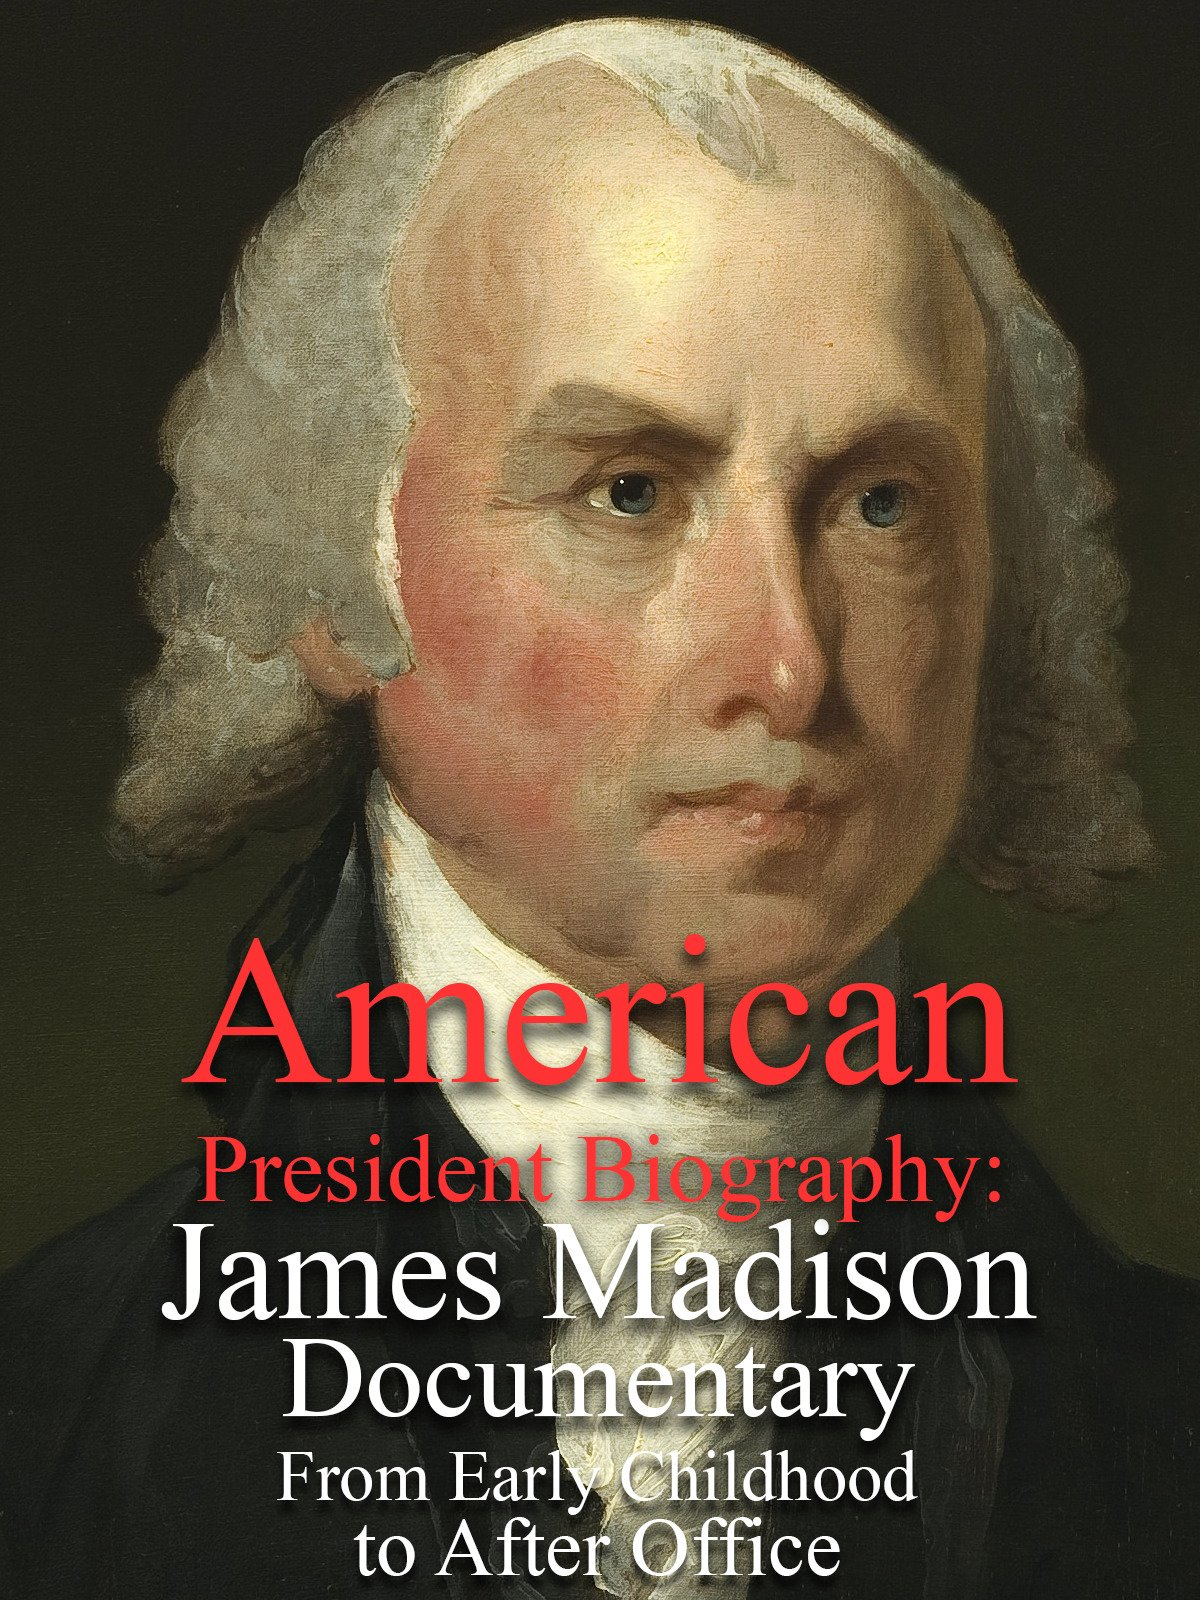 American President Biography: James Madison Documentary From Early Childhood to After Office